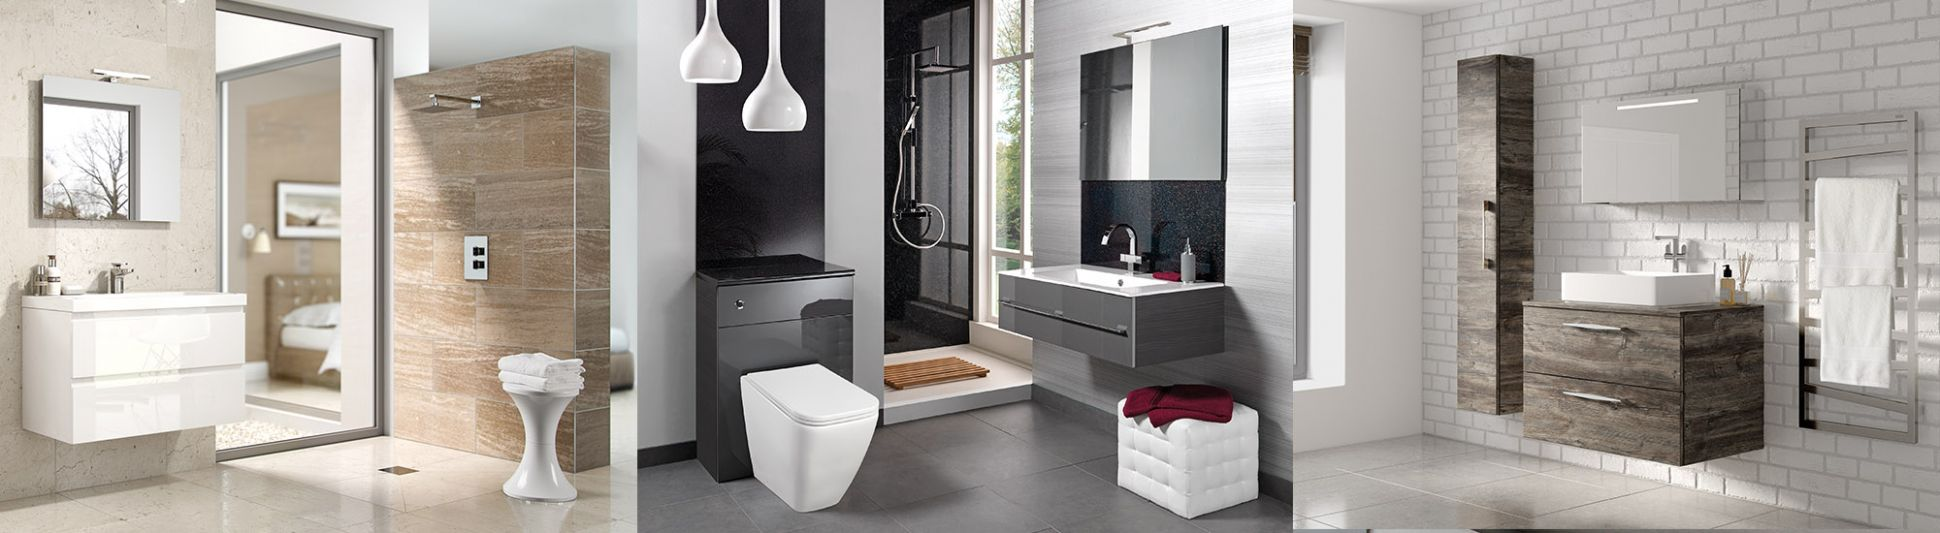 Bathroom Designers Exeter - Kitchenworld